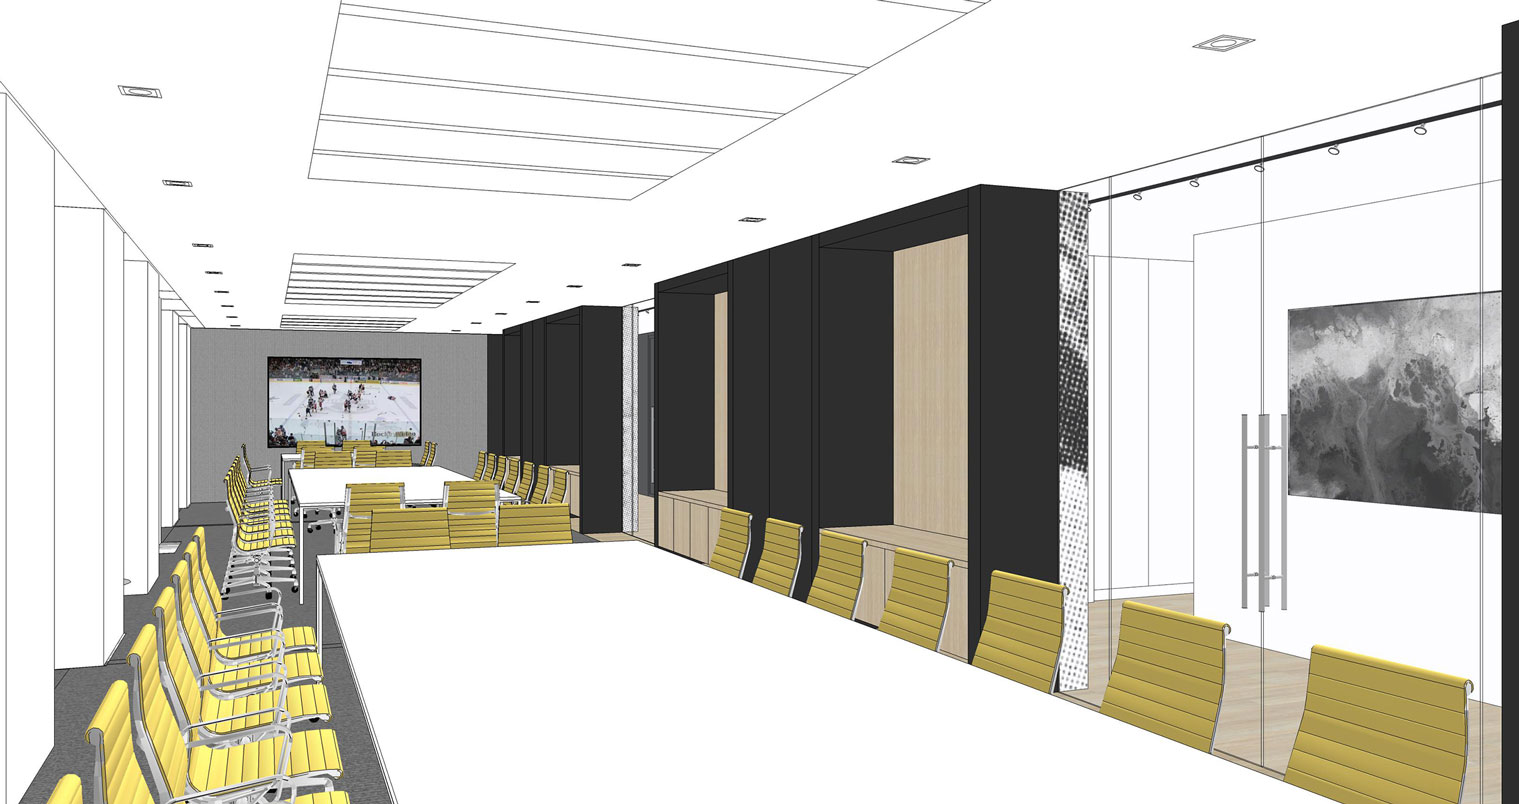 NHLPA rendering of meeting room with large conference table and yellow desk chairs